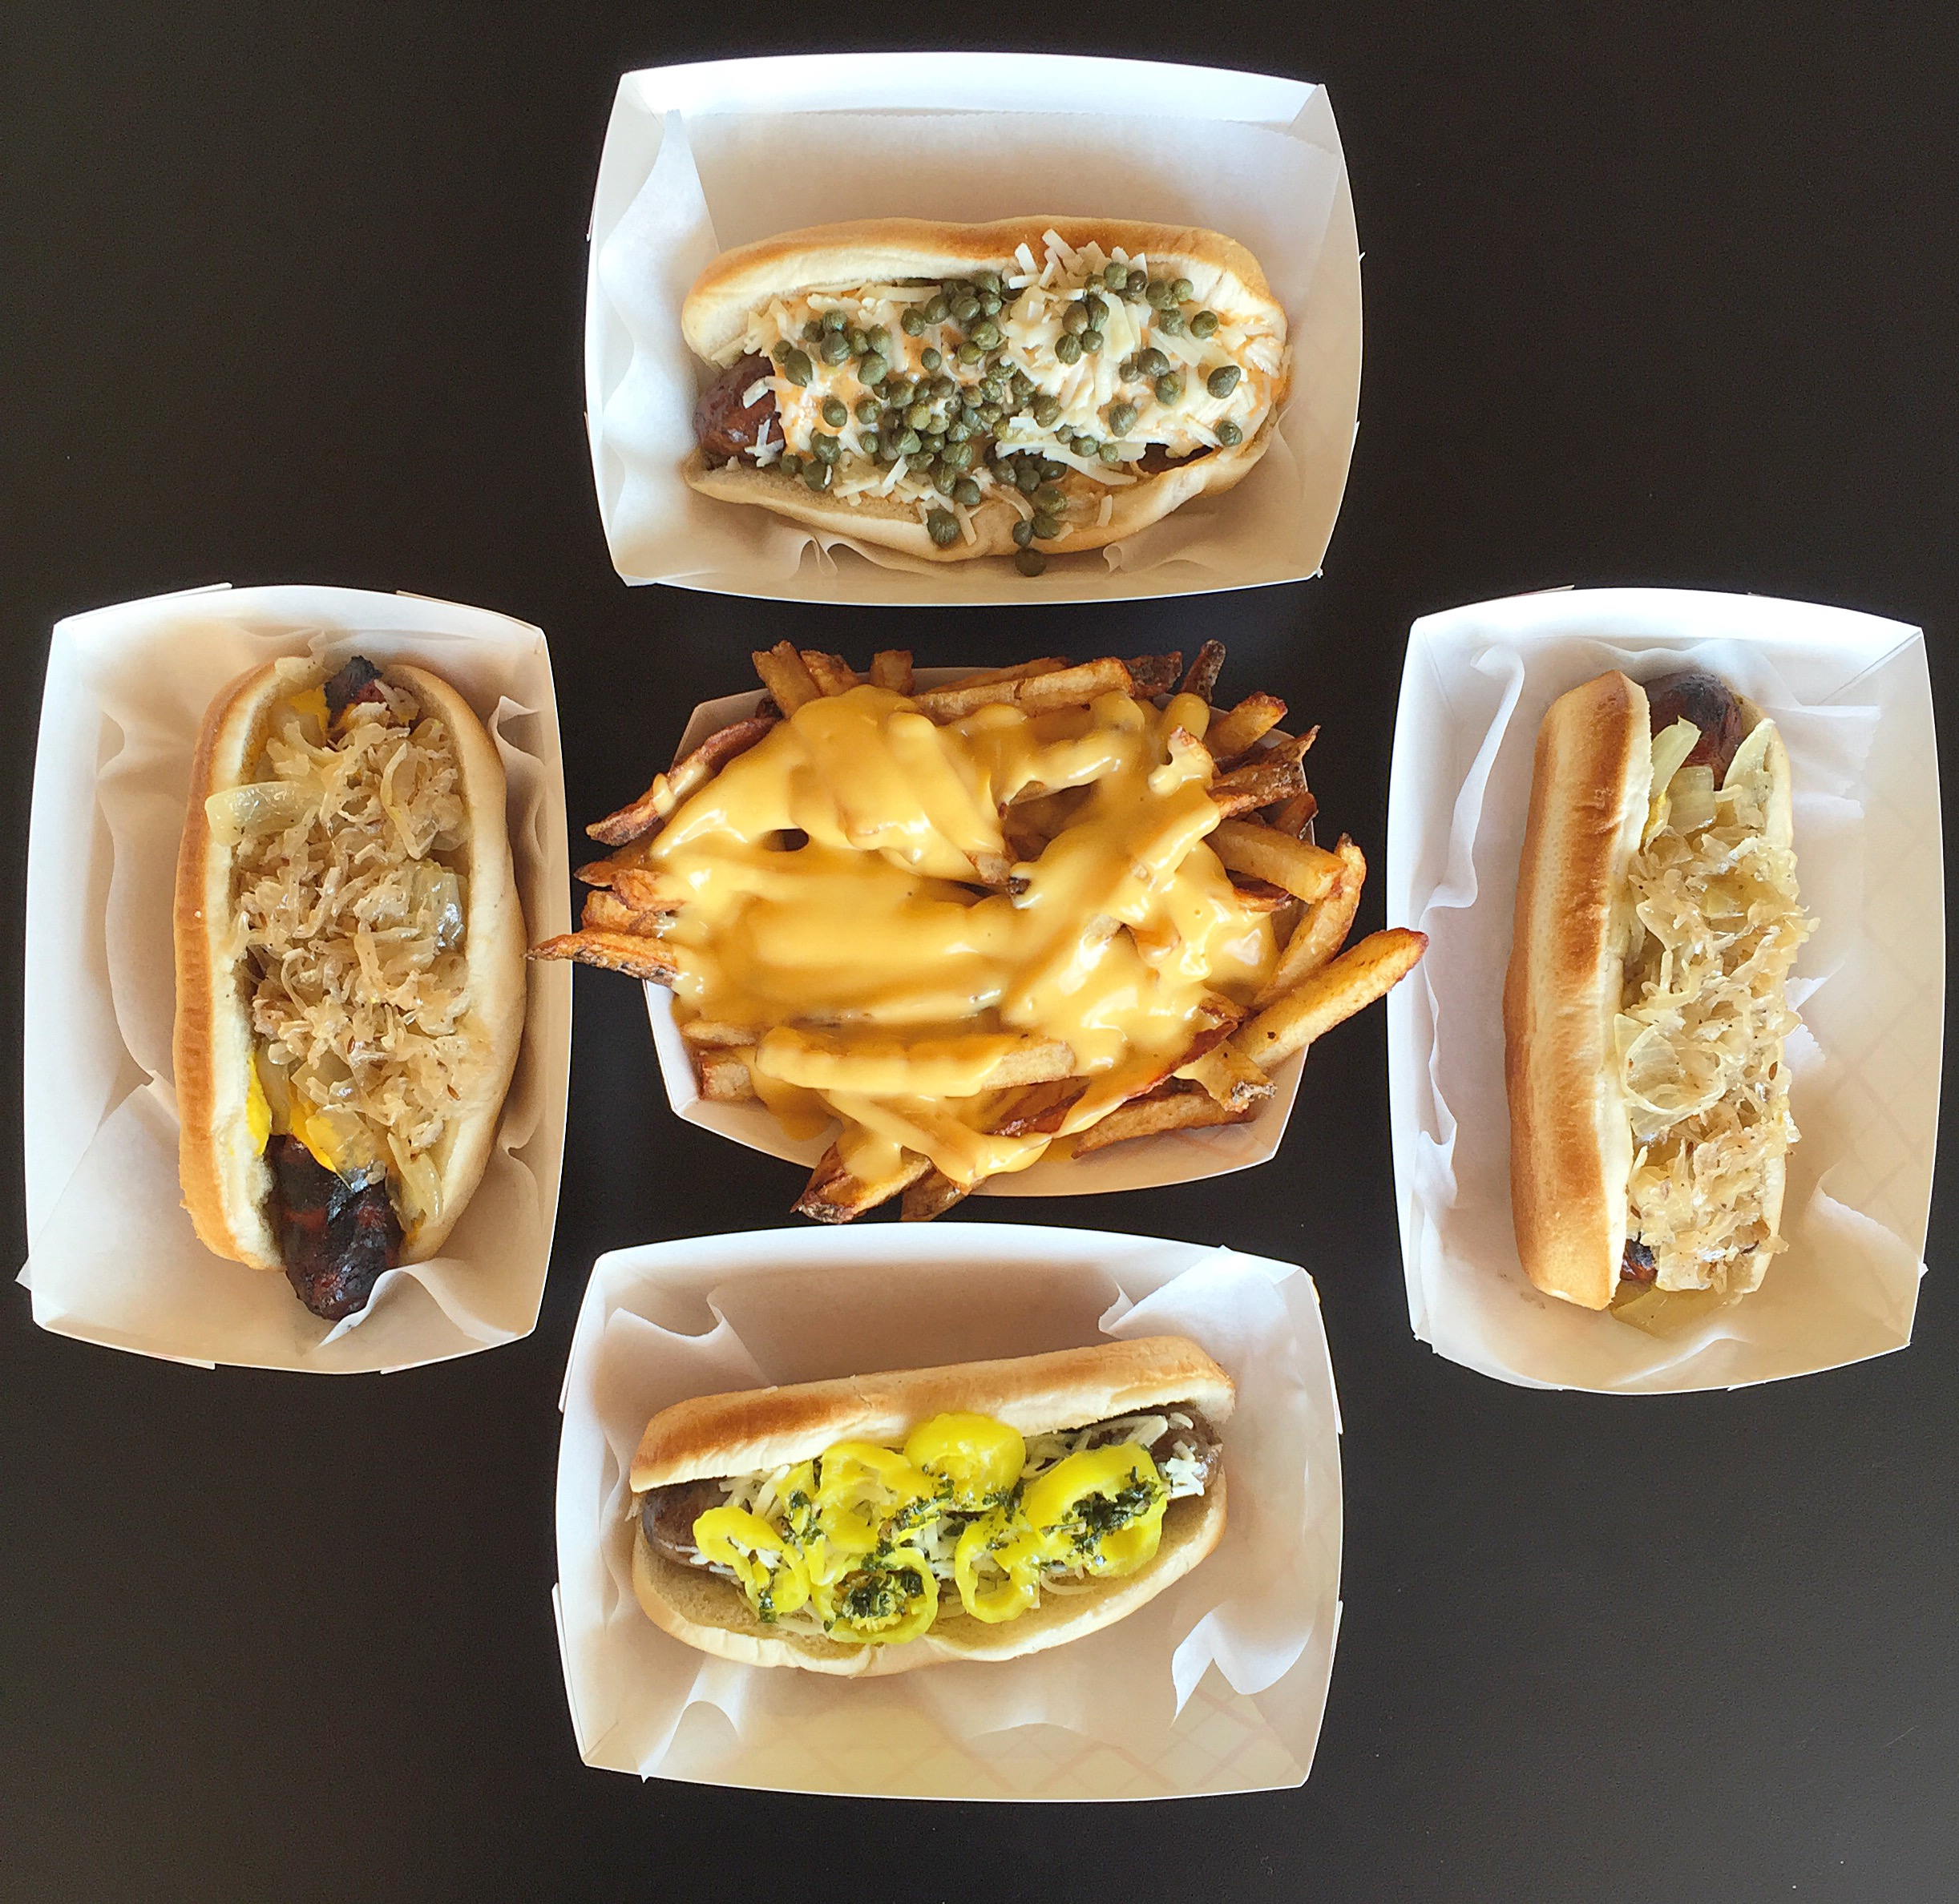 Top Ten Fab Pictures: Fab Happenings: Top 5 Cheap Eats In Andersonville And